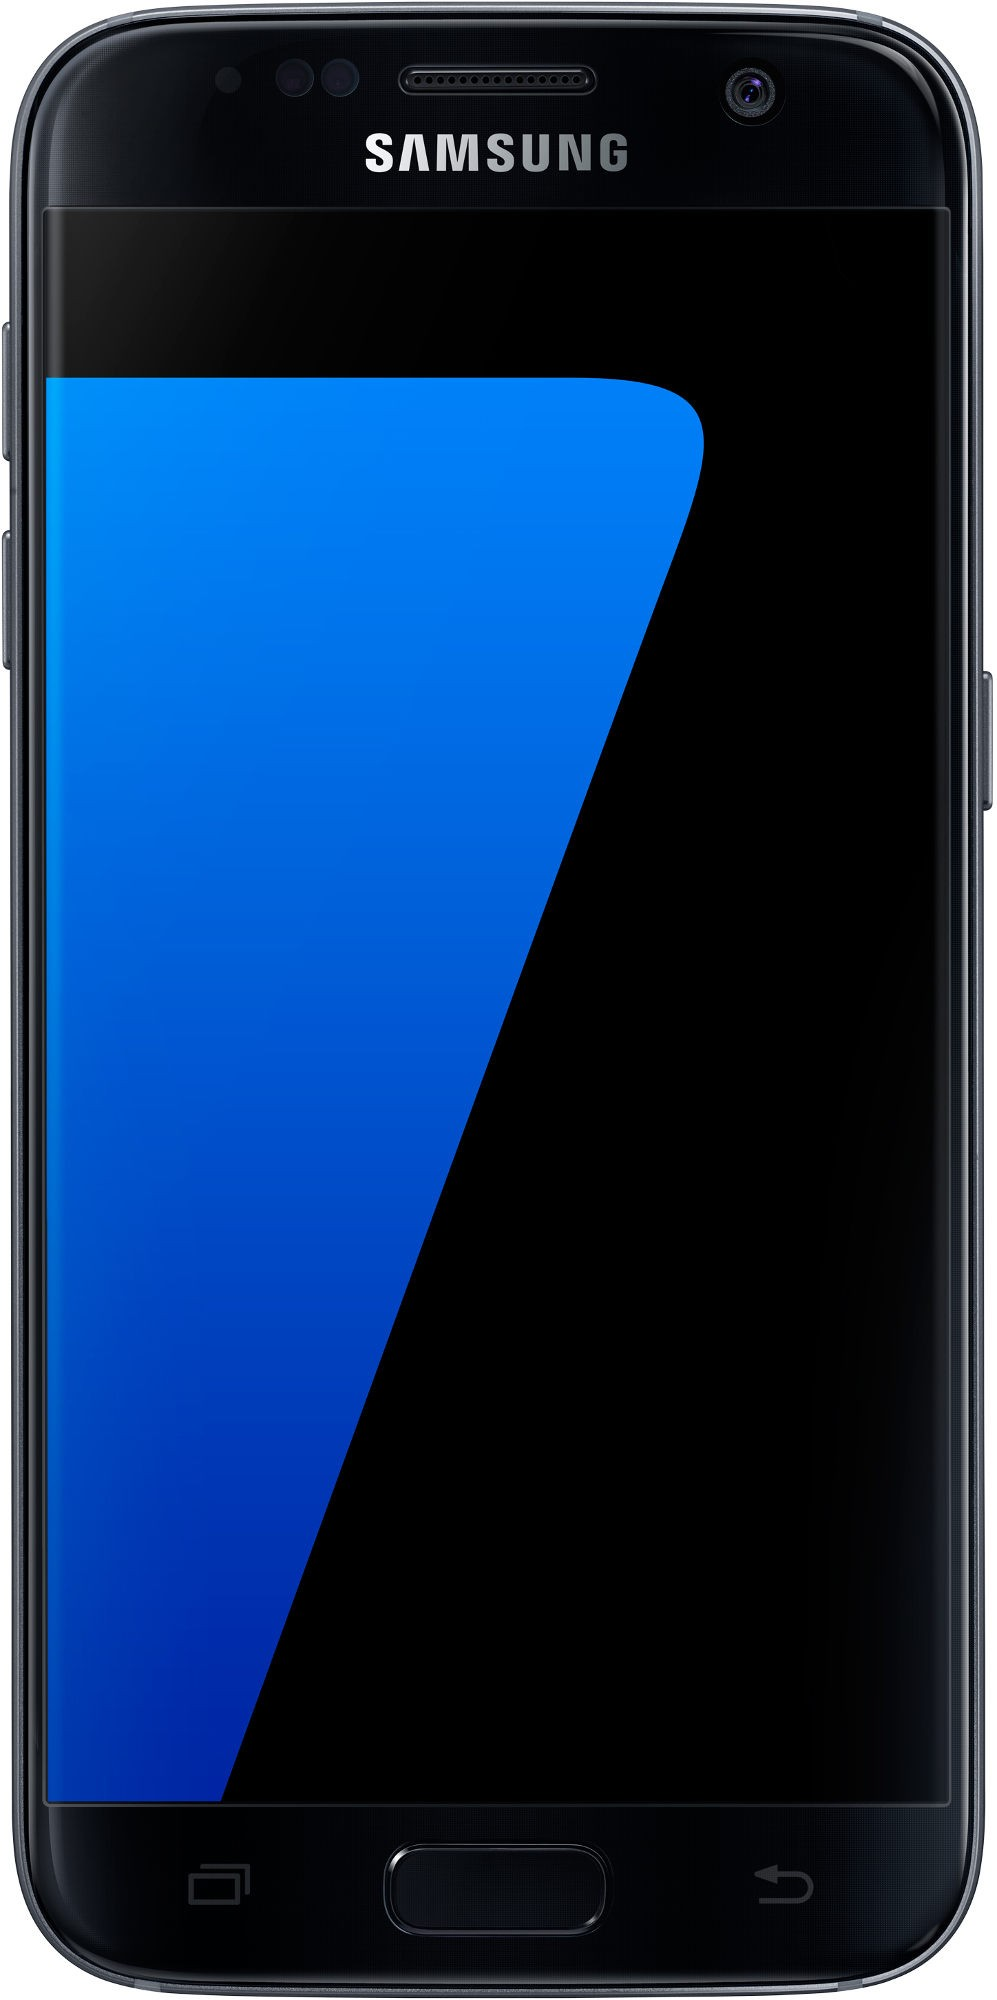 Samsung - Galaxy S7 32 Go Noir - 5.1 pouces - Android 6.0 Marshmallow